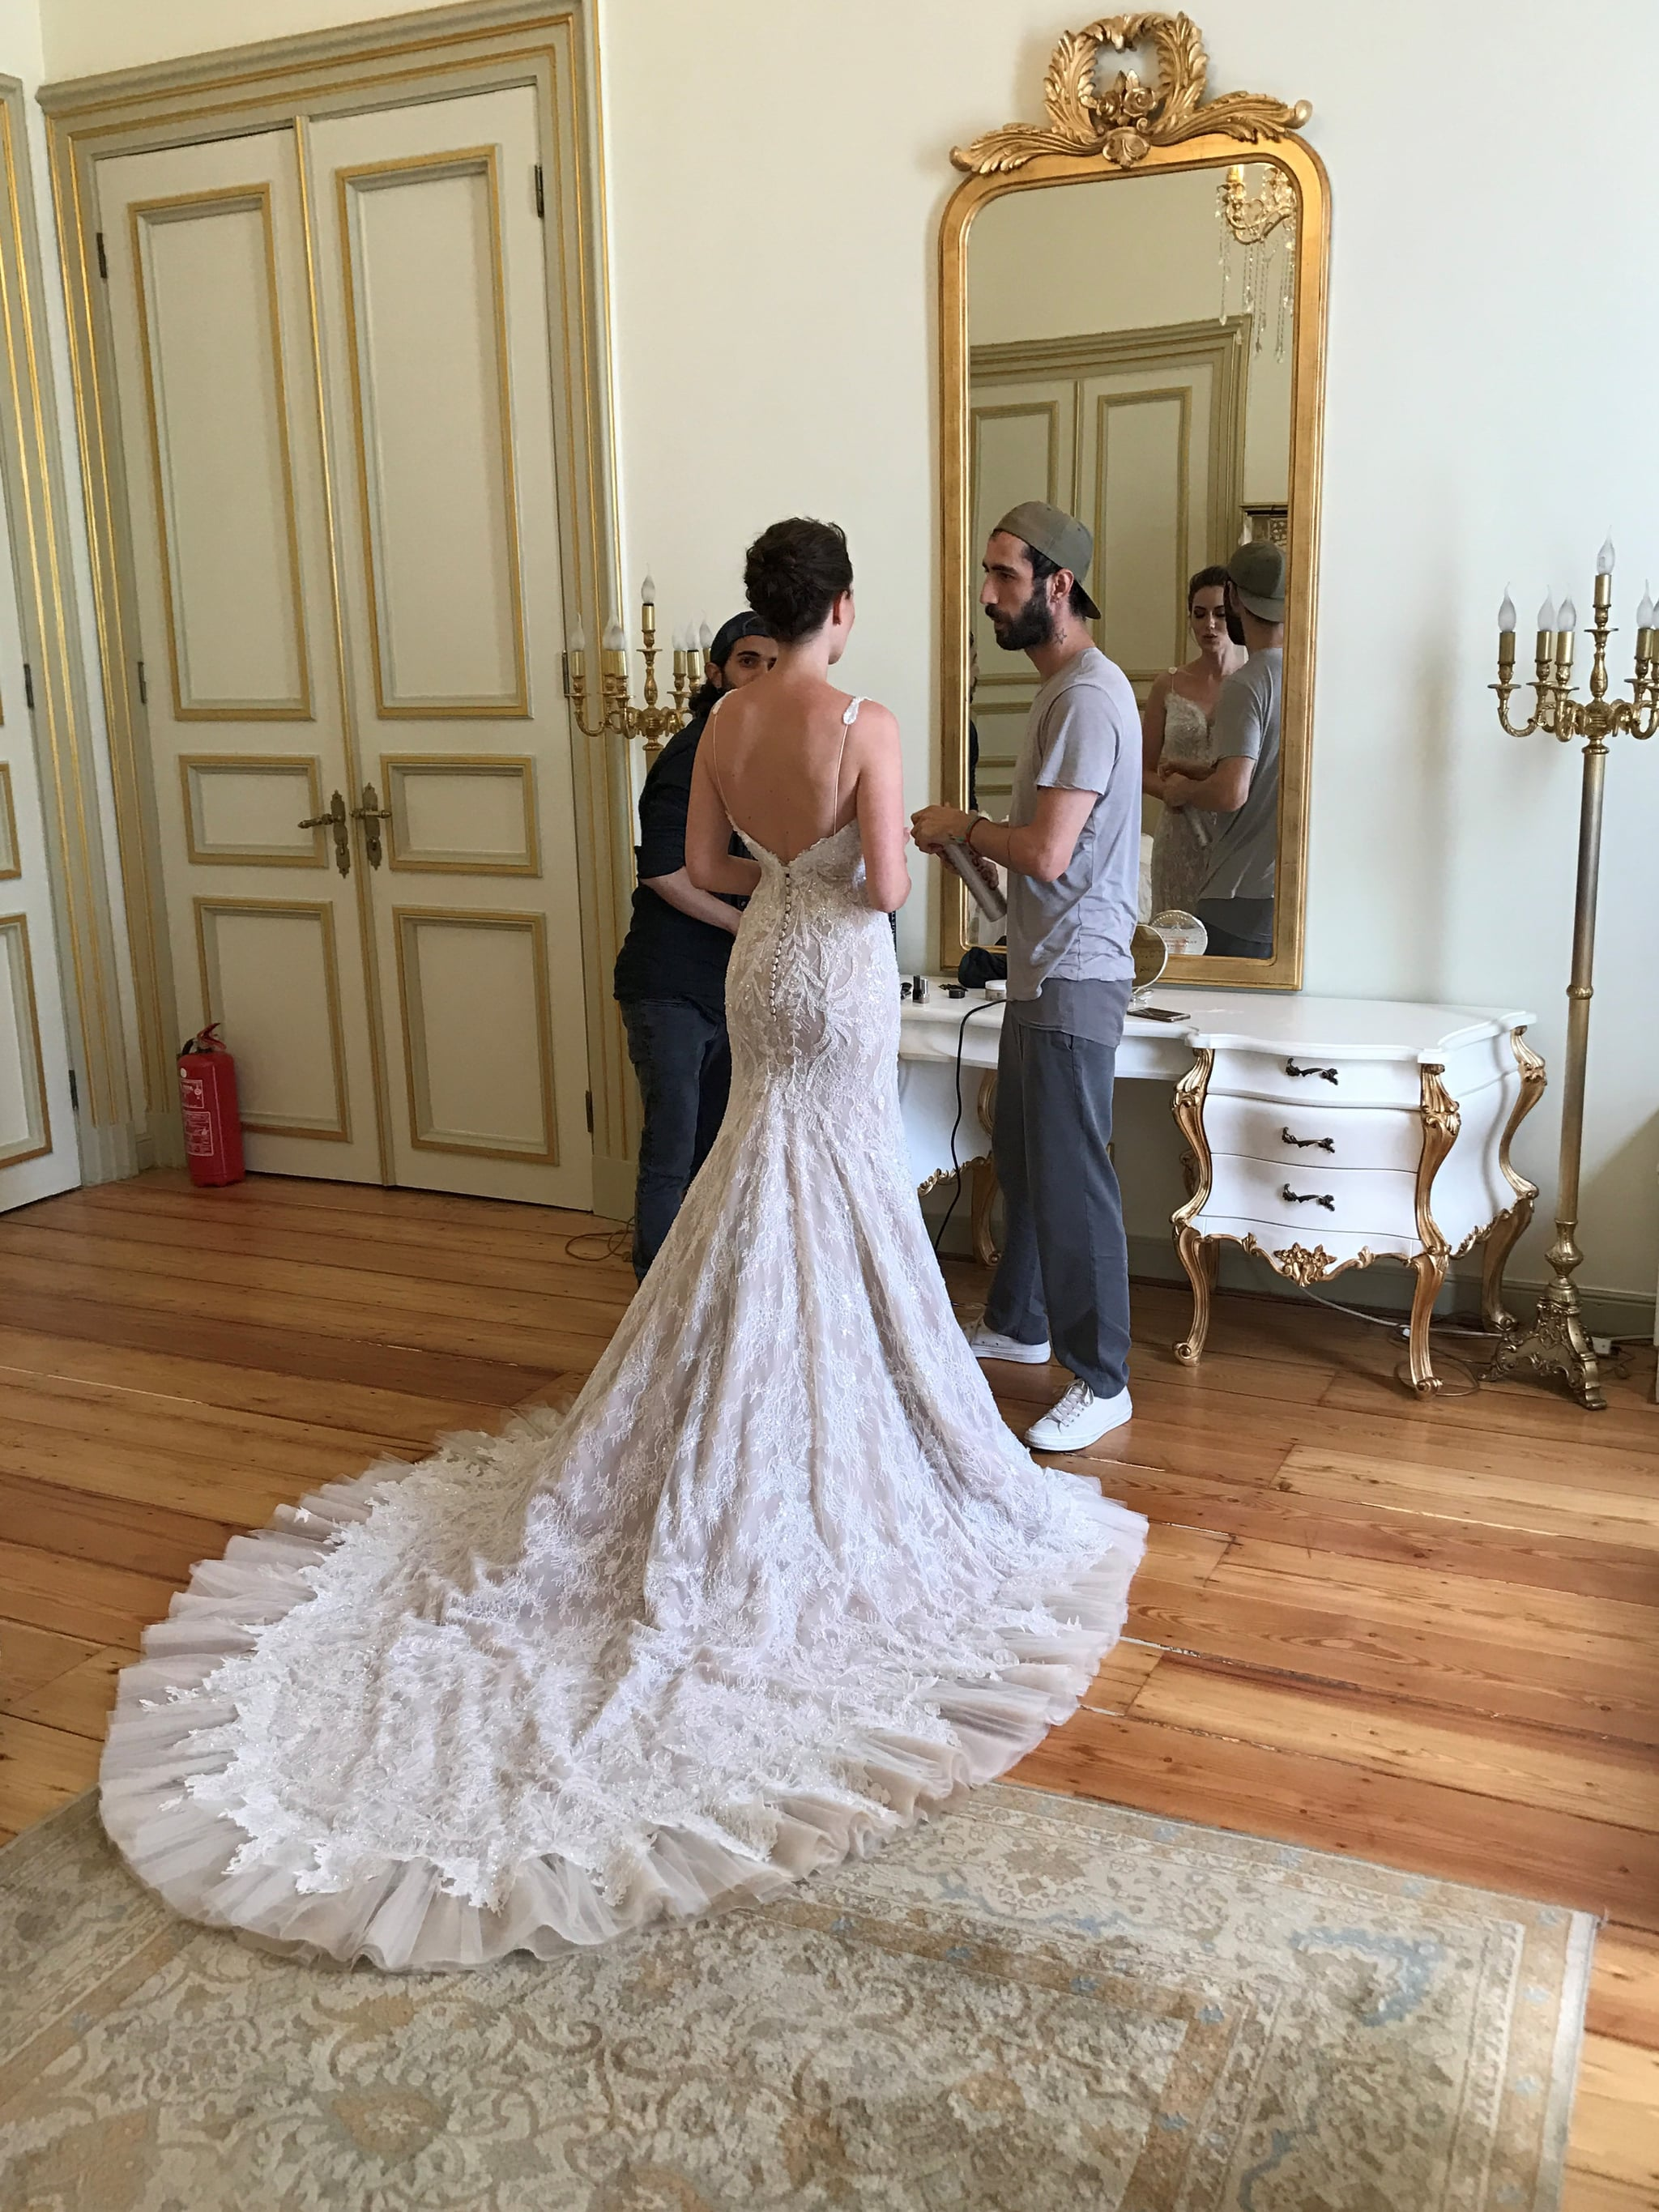 Burak Ozcivit and Fahriye Evcen Istanbul Wedding Pictures ...